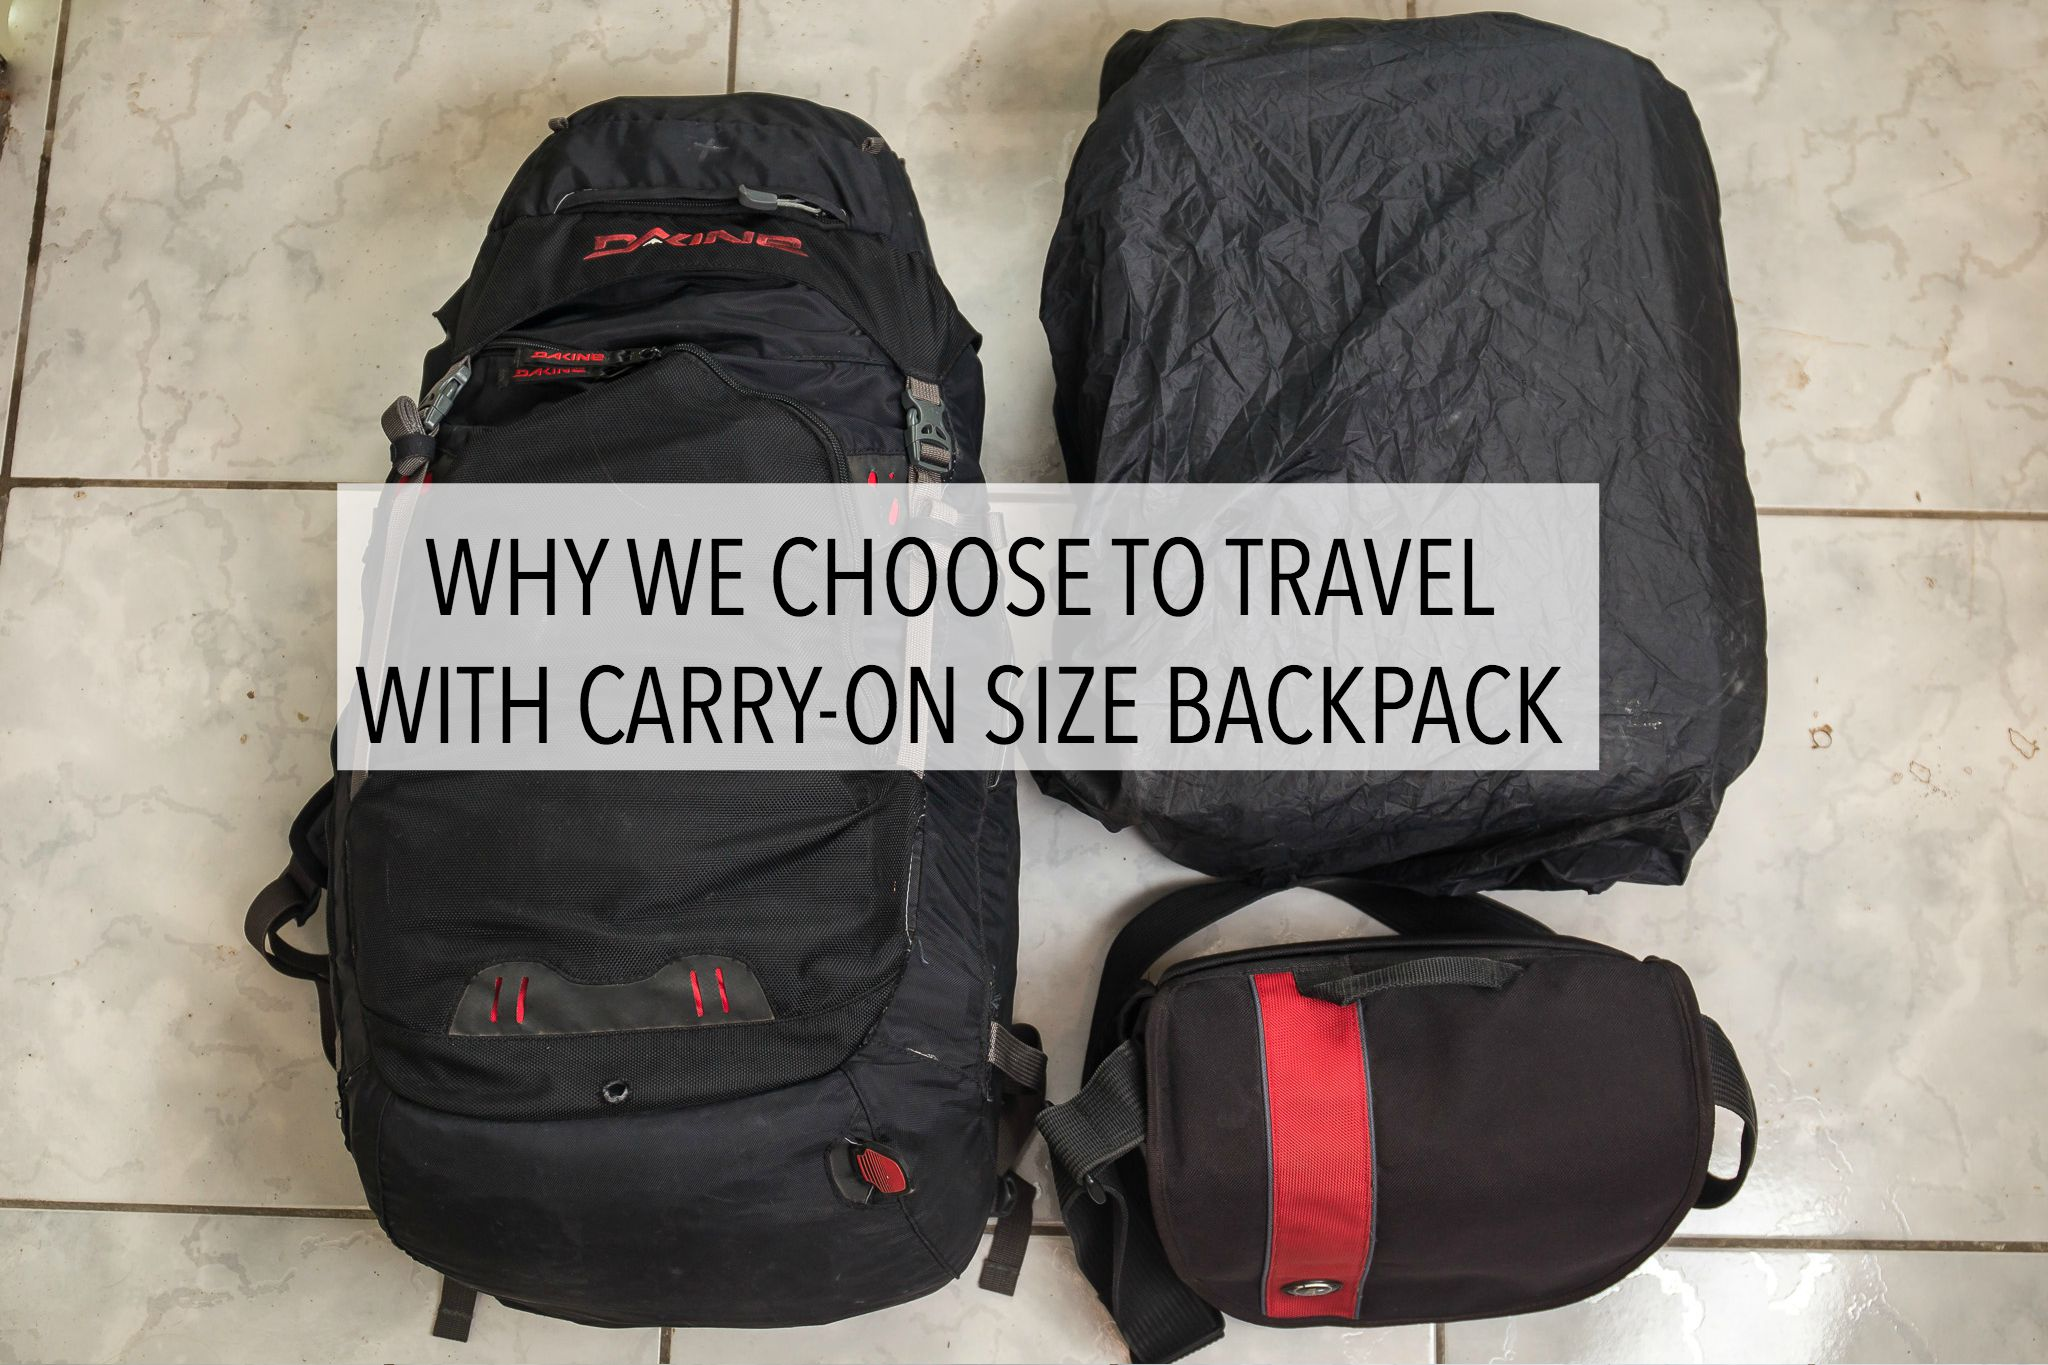 74a23d54c1d Why We Choose To Travel With a Carry-On Size Backpack   Uneven ...